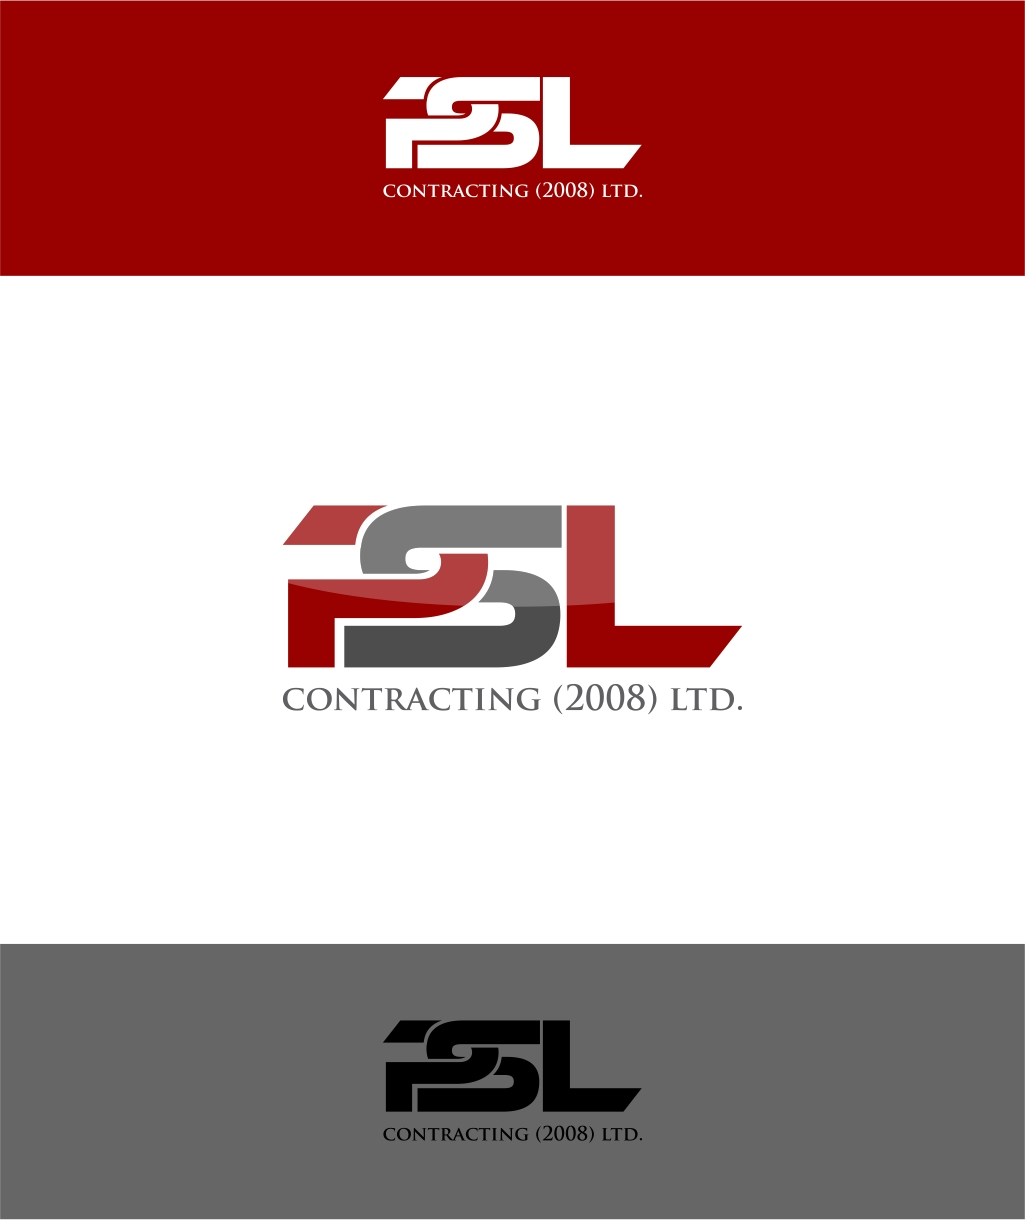 Logo Design by haidu - Entry No. 30 in the Logo Design Contest PSL Contracting (2008) Ltd. Logo Design.